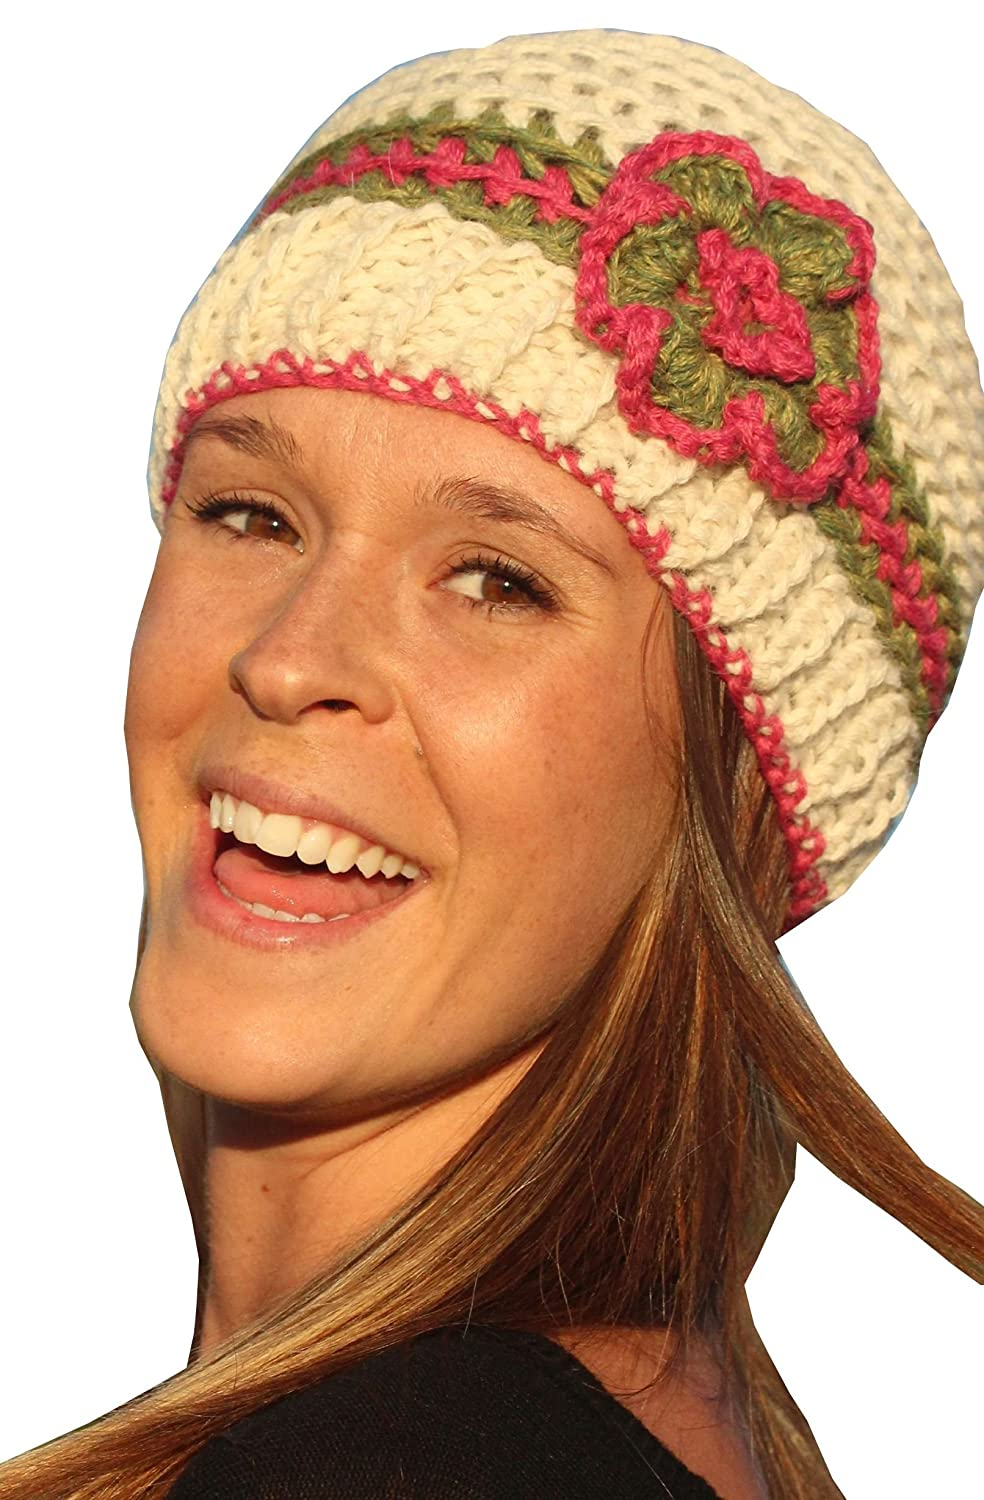 by Alpacas of Montana Hand Knit in Bozeman 6 Color Options Montana Alpaca Knit Hat with Flower